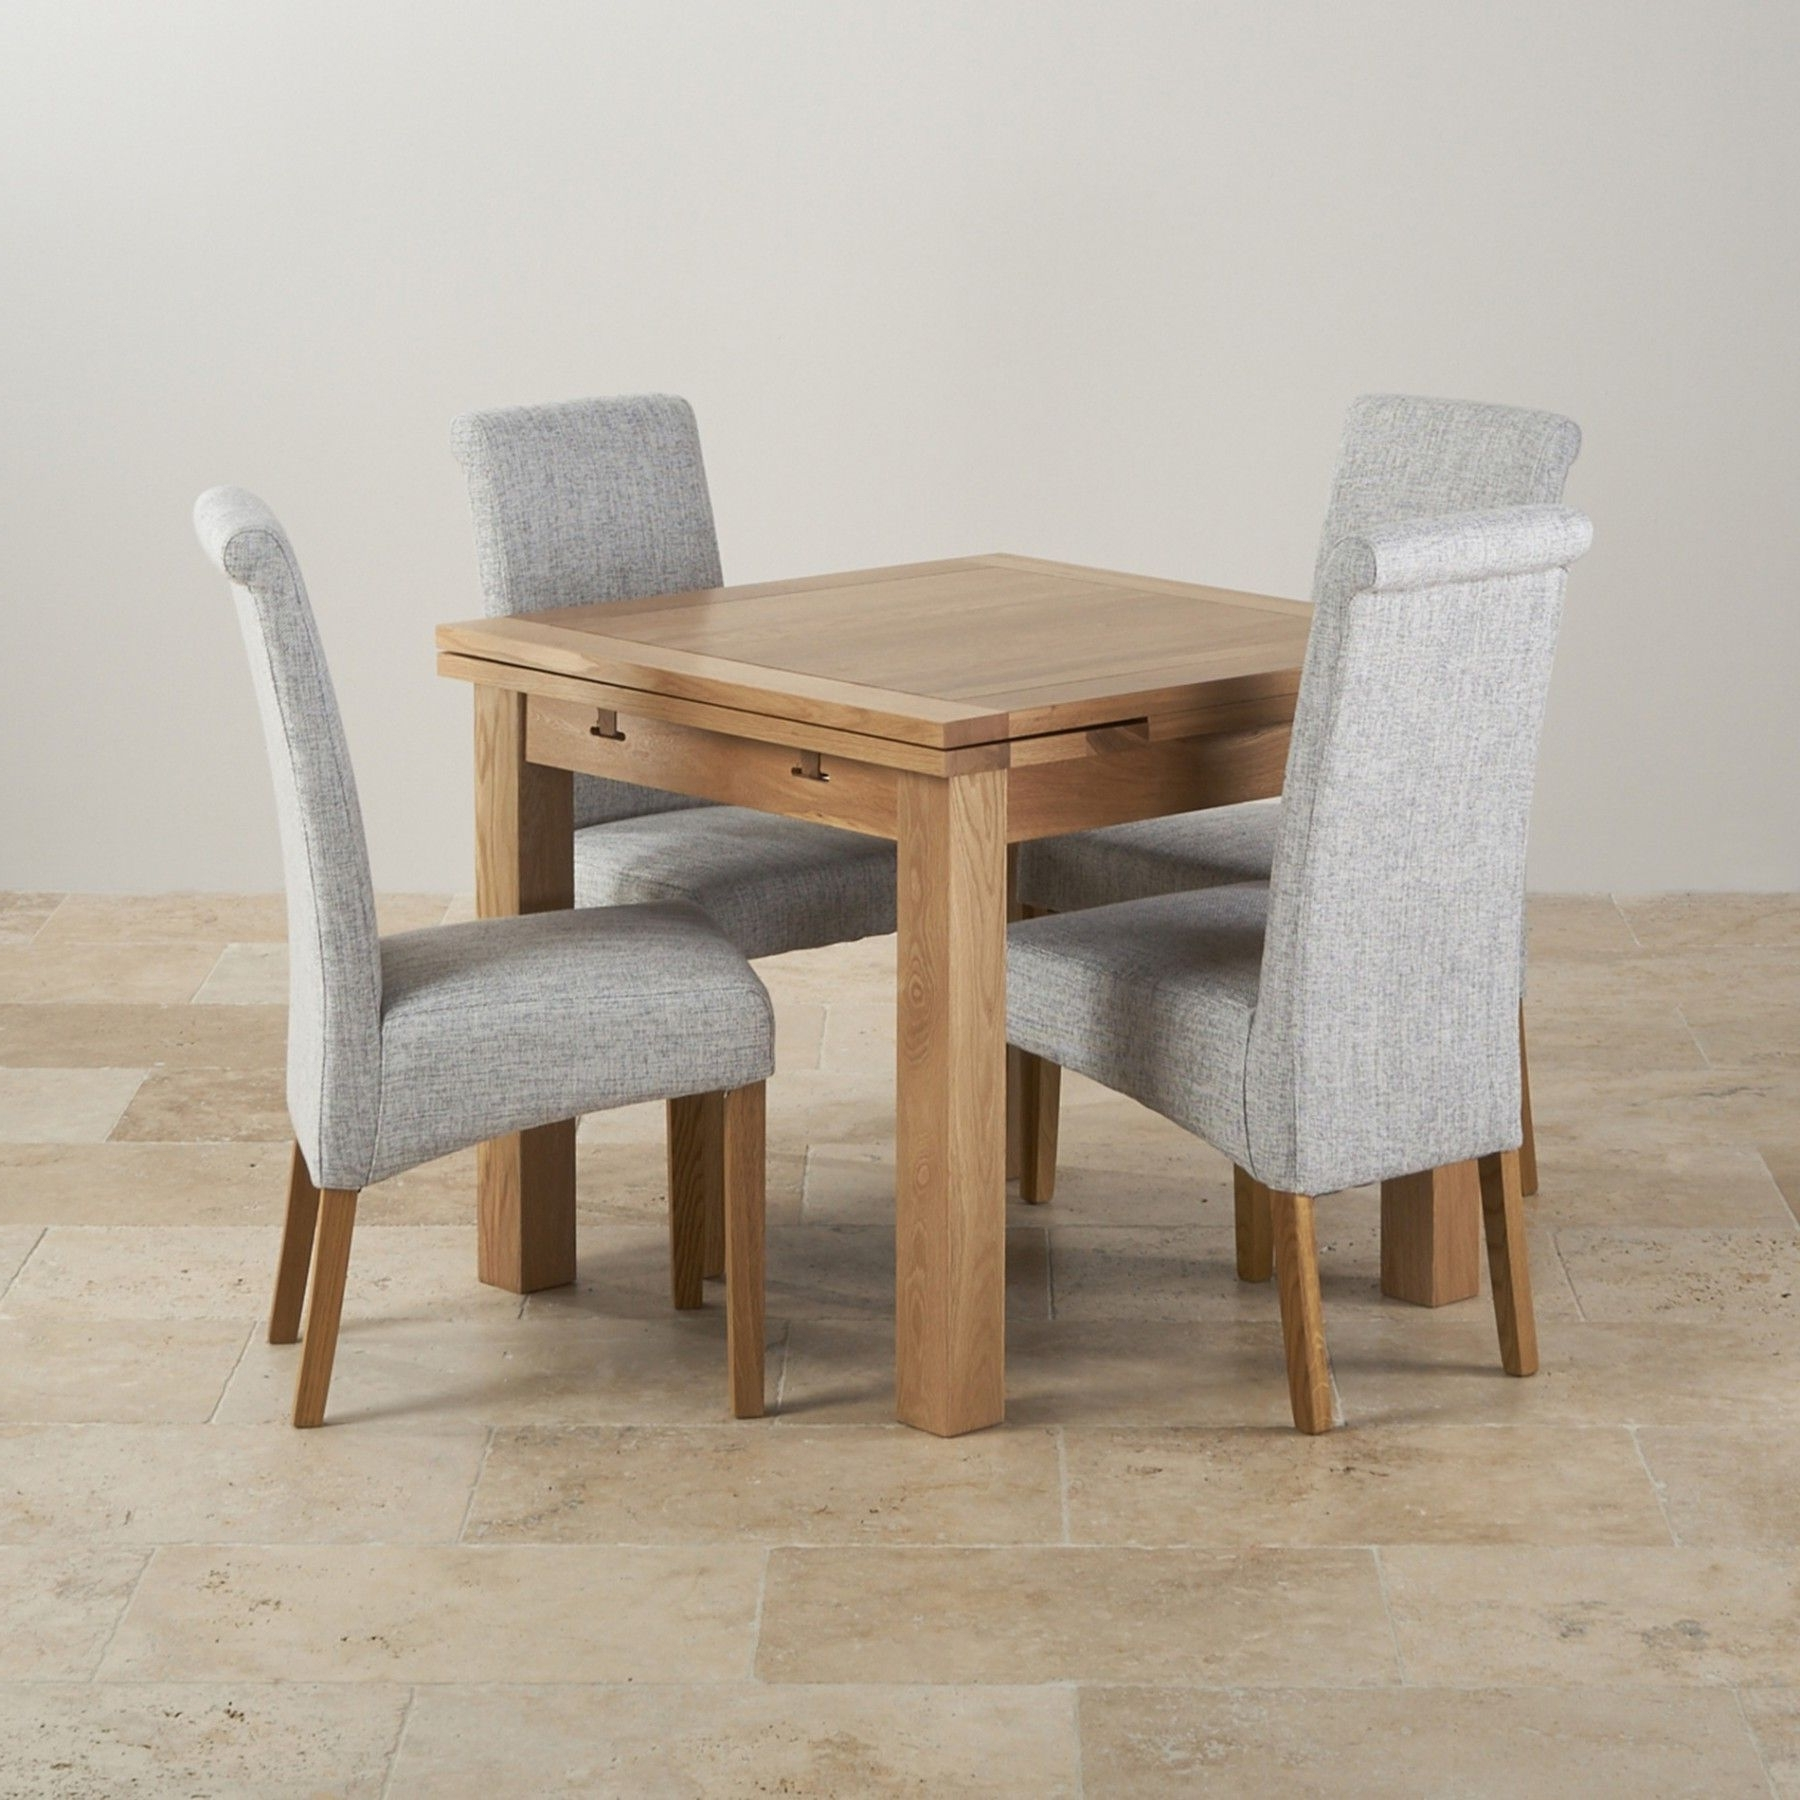 Most Recent Dorset Natural Solid Oak Dining Set – 3Ft Extending Table With 4 Intended For Small Extending Dining Tables And 4 Chairs (View 13 of 25)